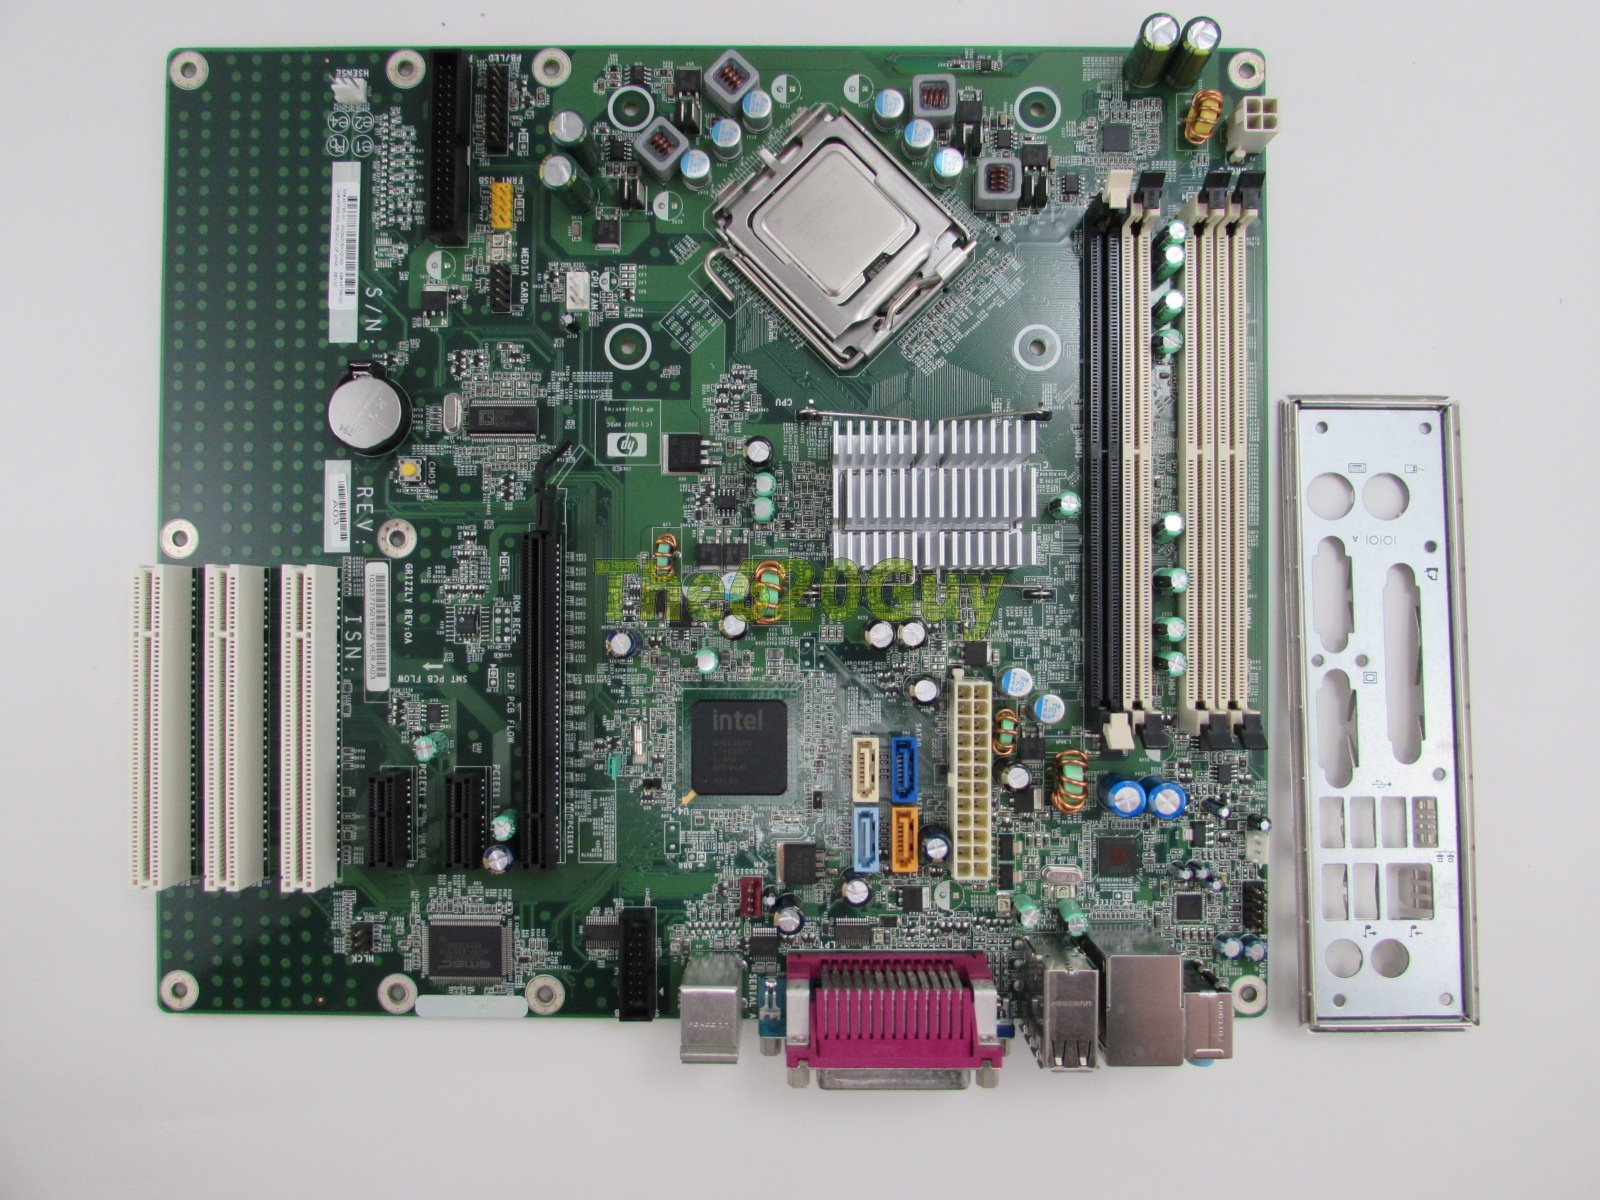 HP Compaq DC7800 437795-001 Grizzly Motherboard + Core 2 Duo E6750 2 66GHz  CPU - The620Guy com